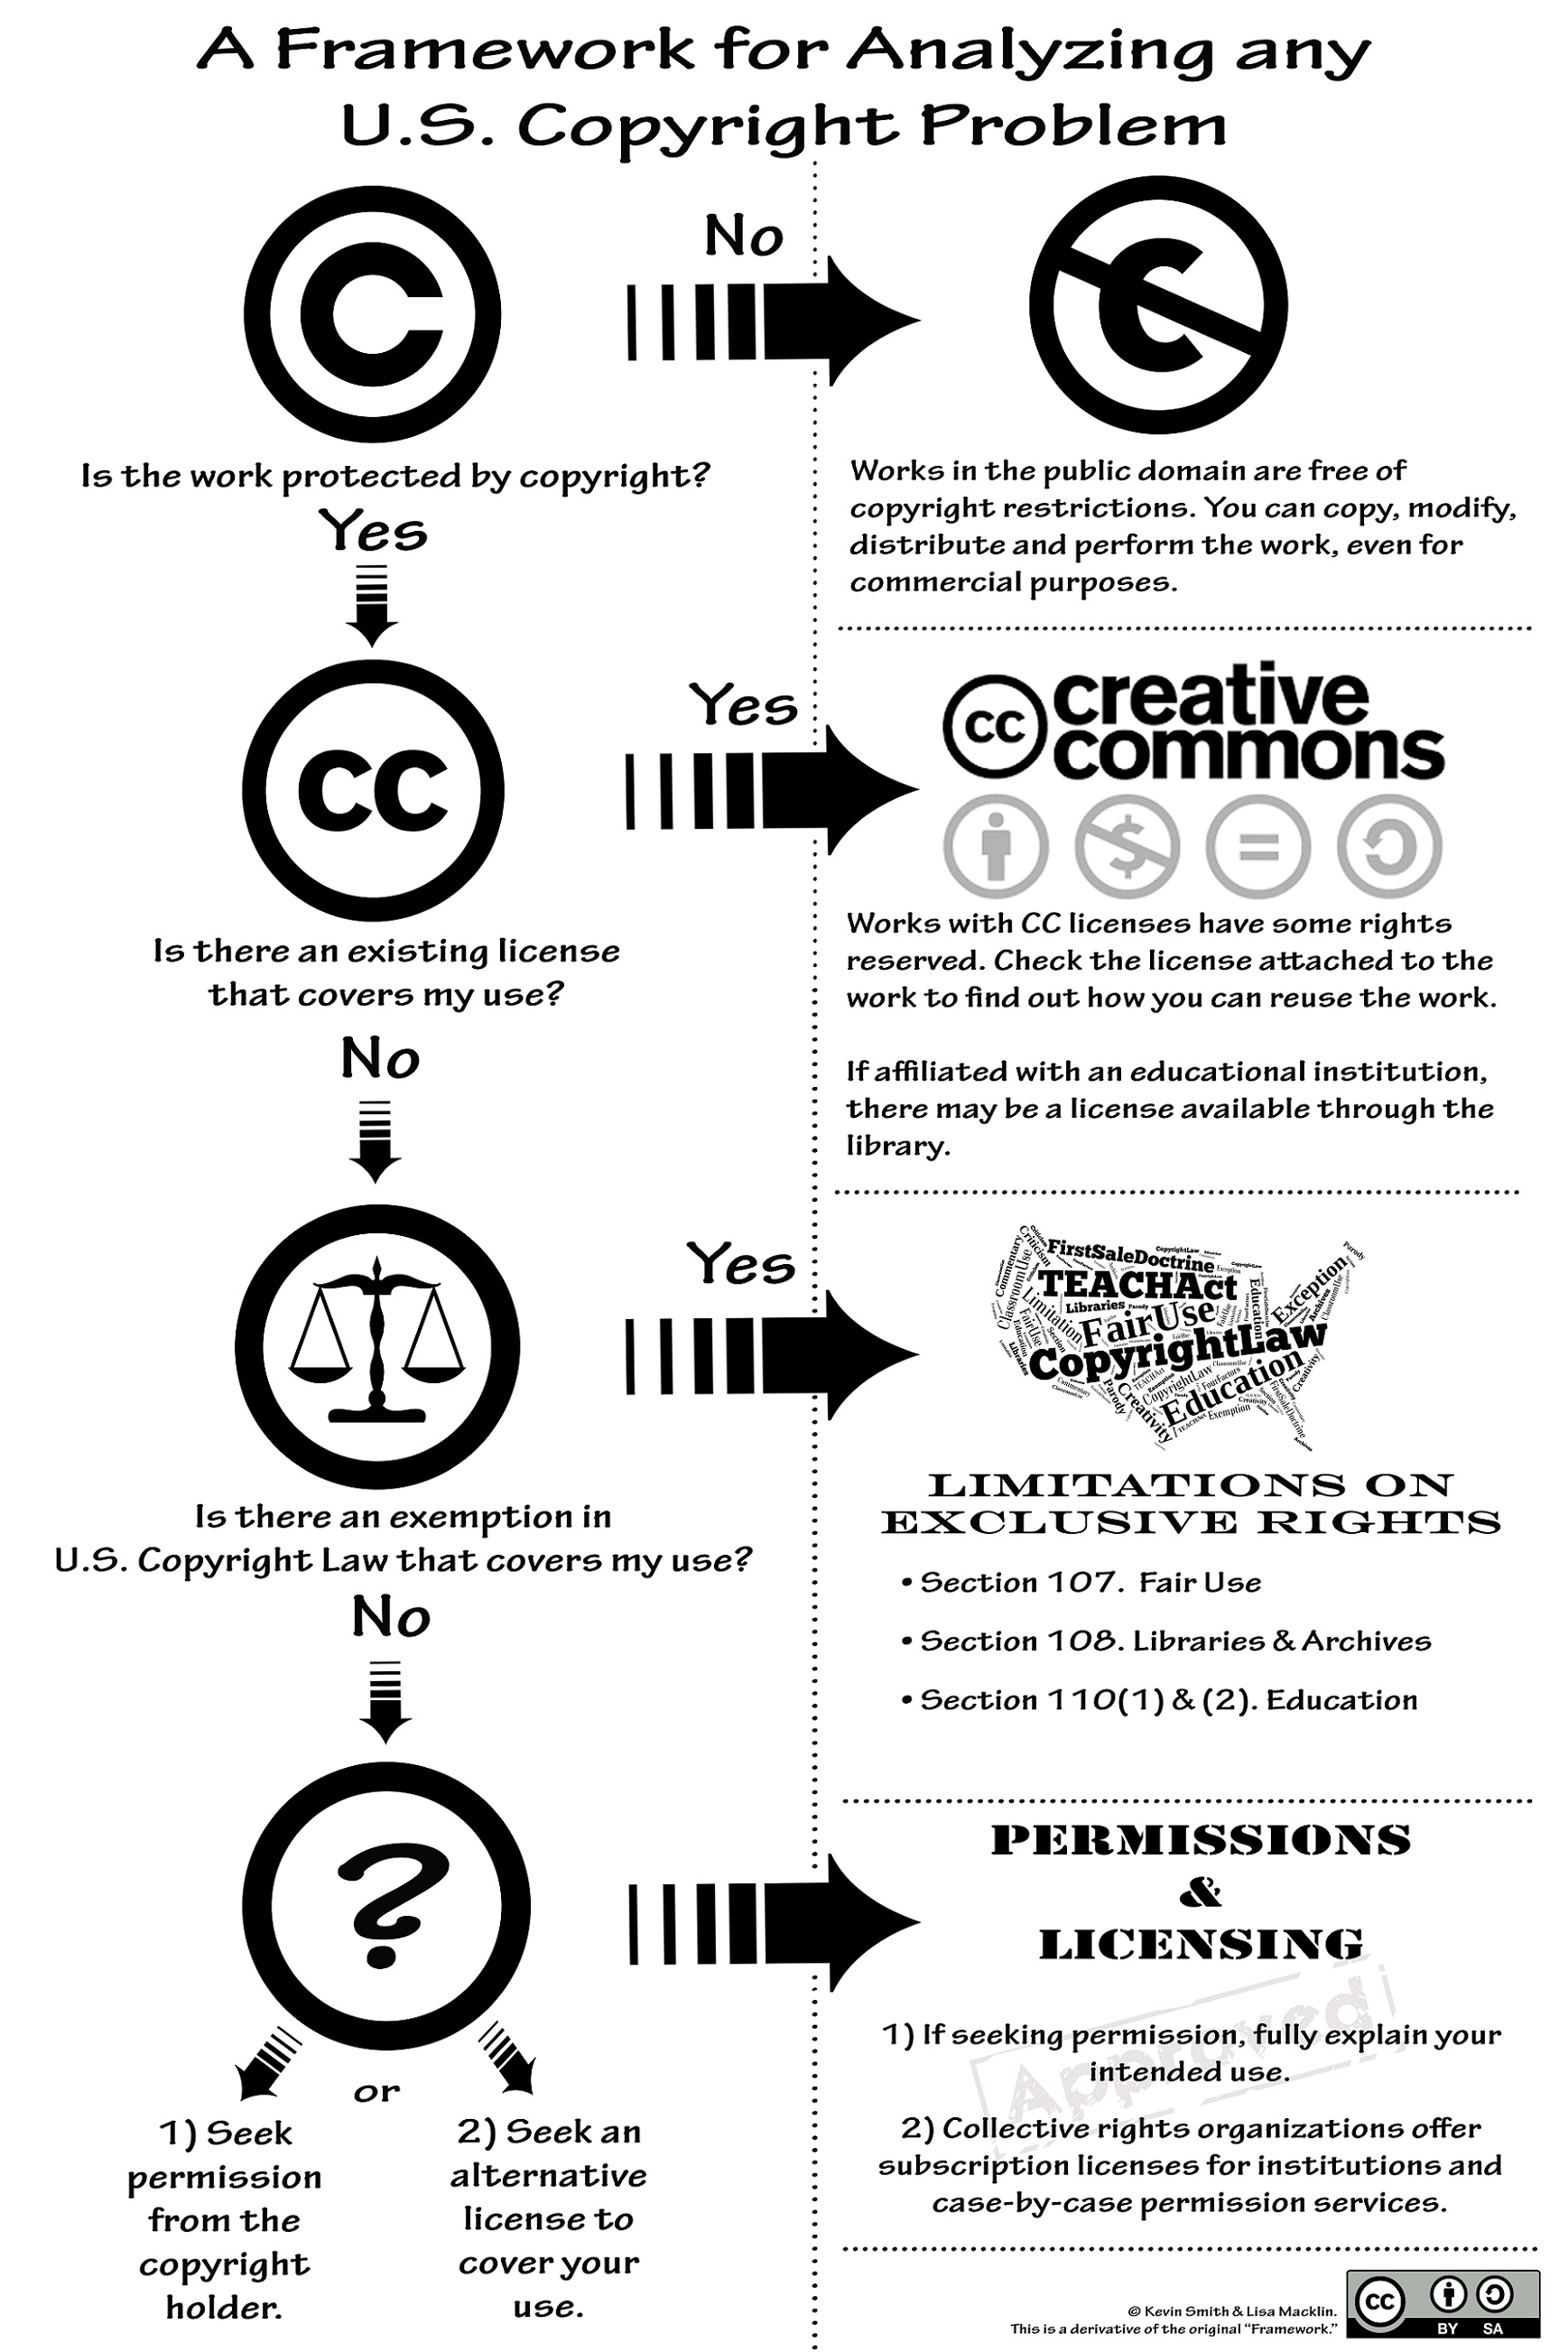 internet and copyright issues essay Disadvantages of internet essay examples 11 total results pornography: the dark side of the internet 2,073 words 5 pages the benefits and drawbacks of using the internet 5,856 words 13 pages the advantages and disadvantages of the internet in today's world 1,661 words 4 pages.